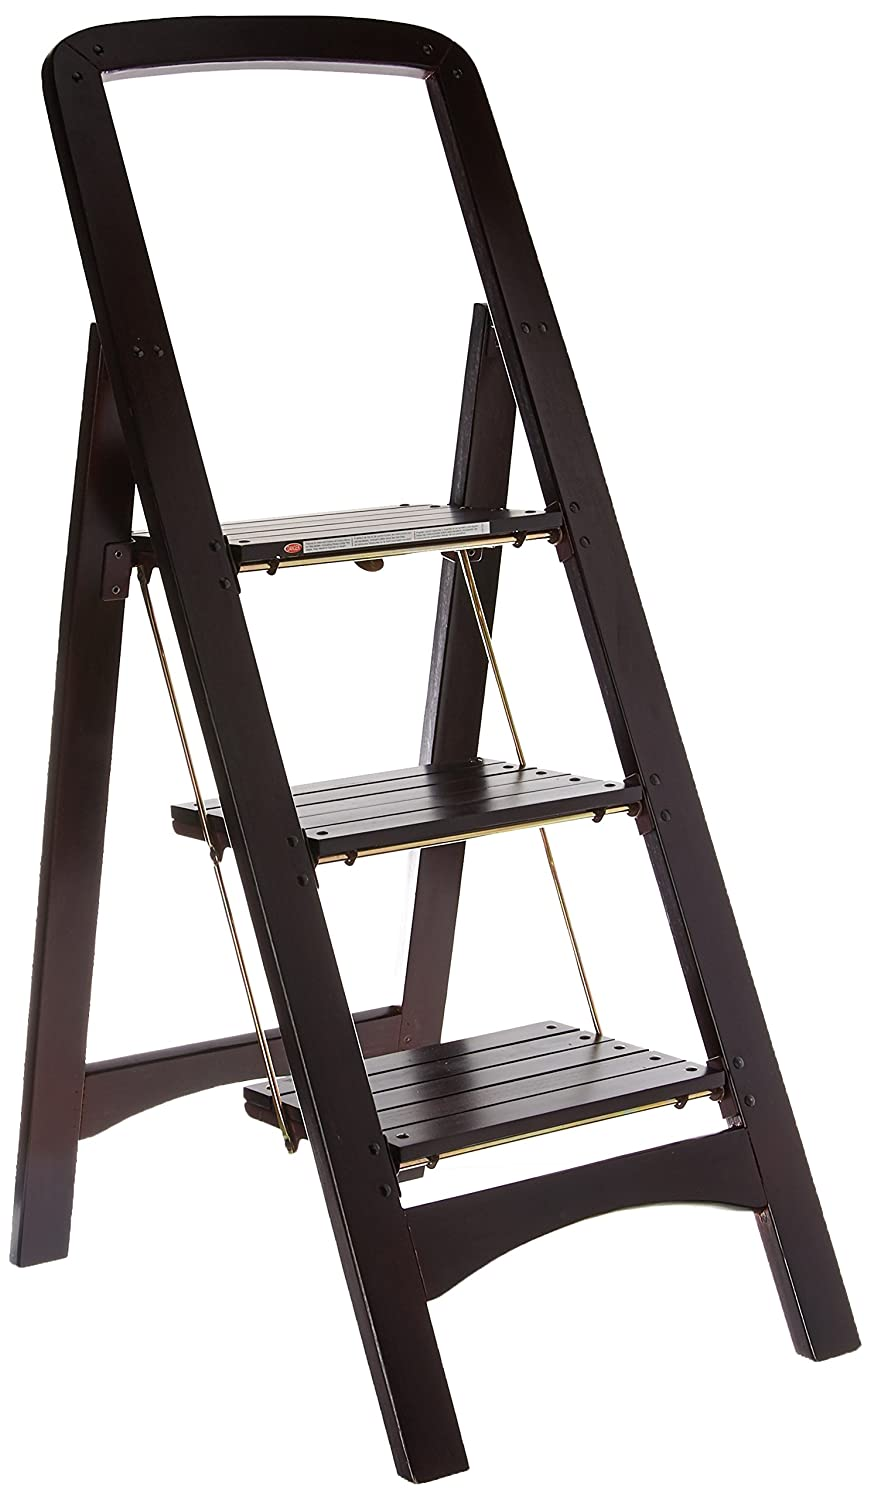 Cosco Three Step Rockford Wood Step Stool, Mahogany Dorel Home Furnishings 11255MGY1